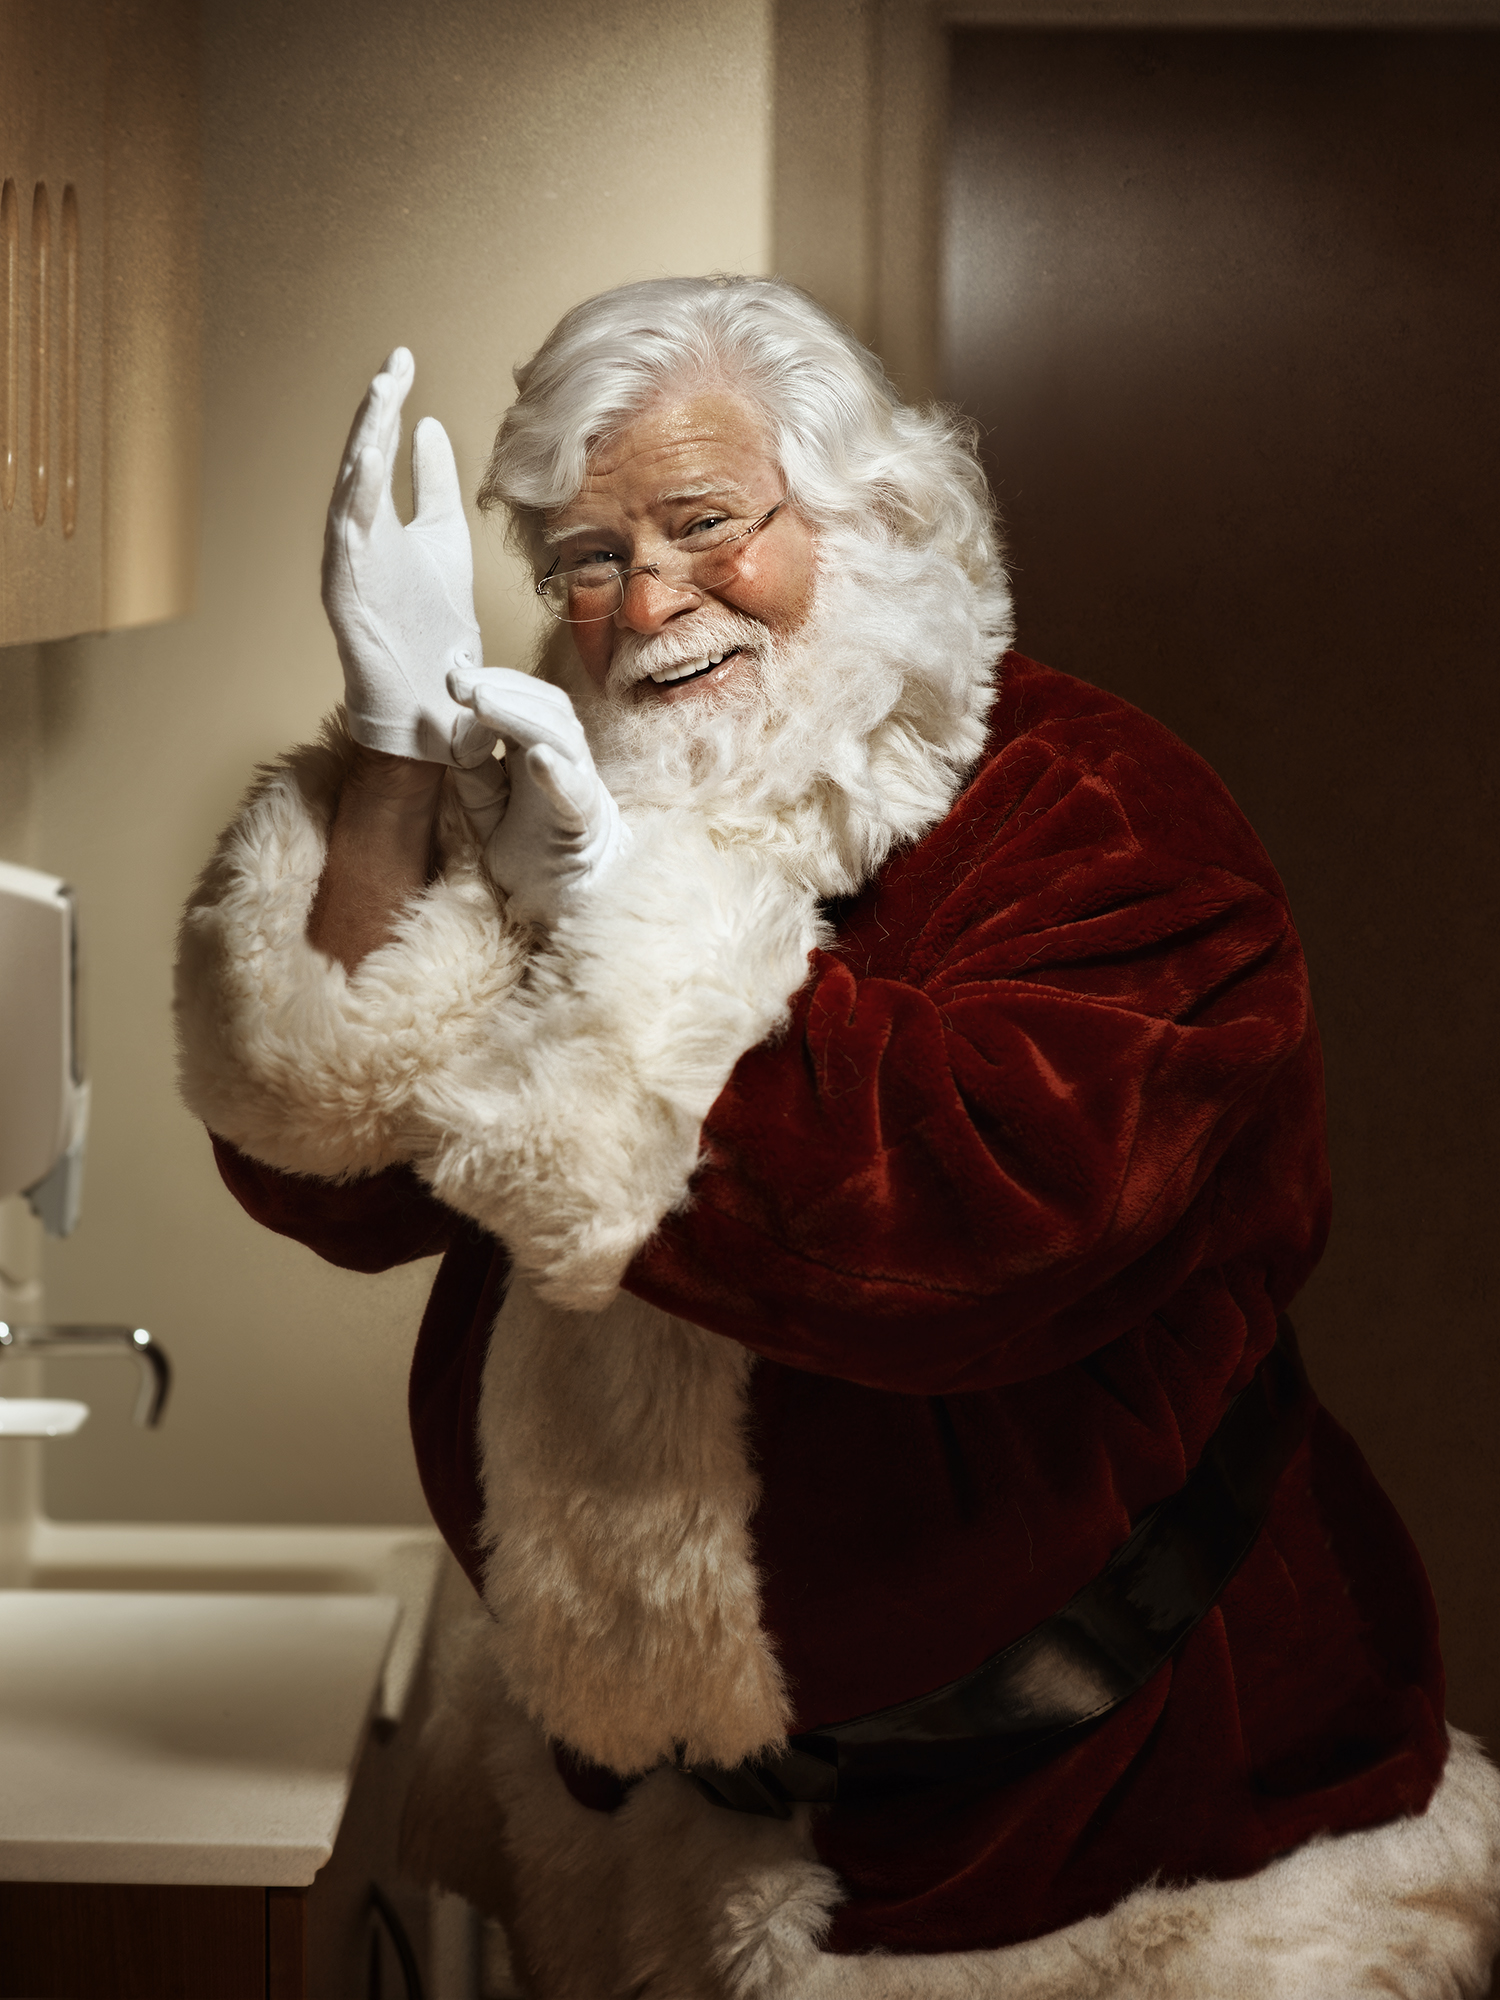 Santa washing hands